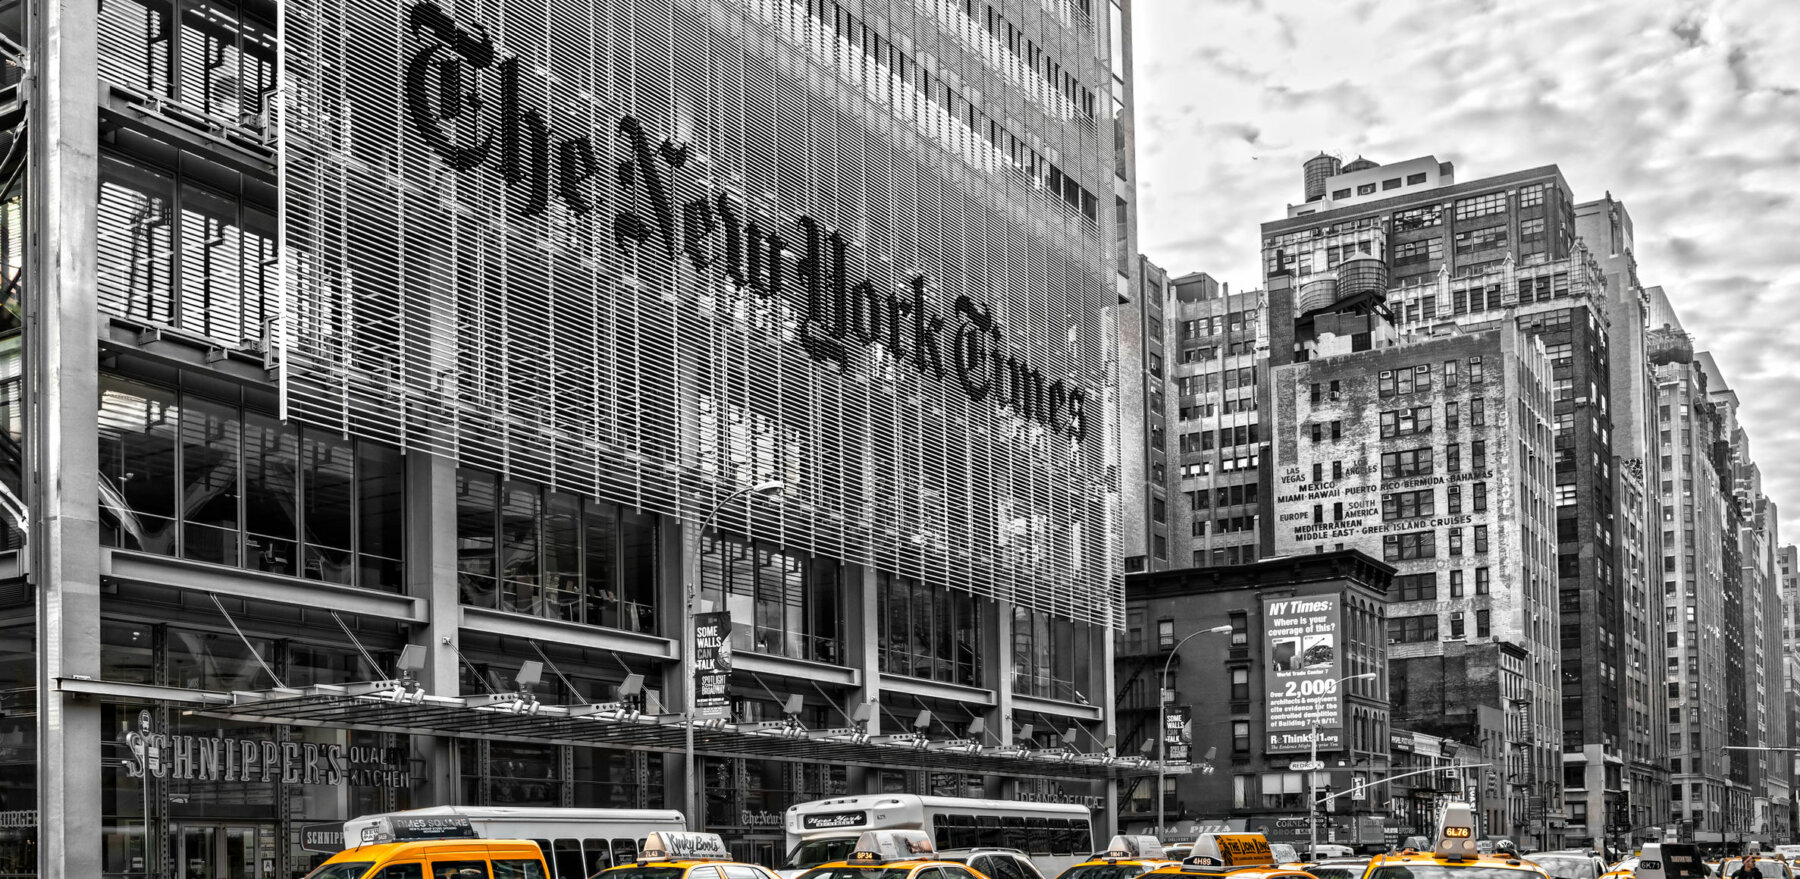 NEW YORK CITY - DEC 01 The New York Times building and characteristic Yellow Taxi Cab,on December 01th, 2013 in Manhattan, New York City. USA.